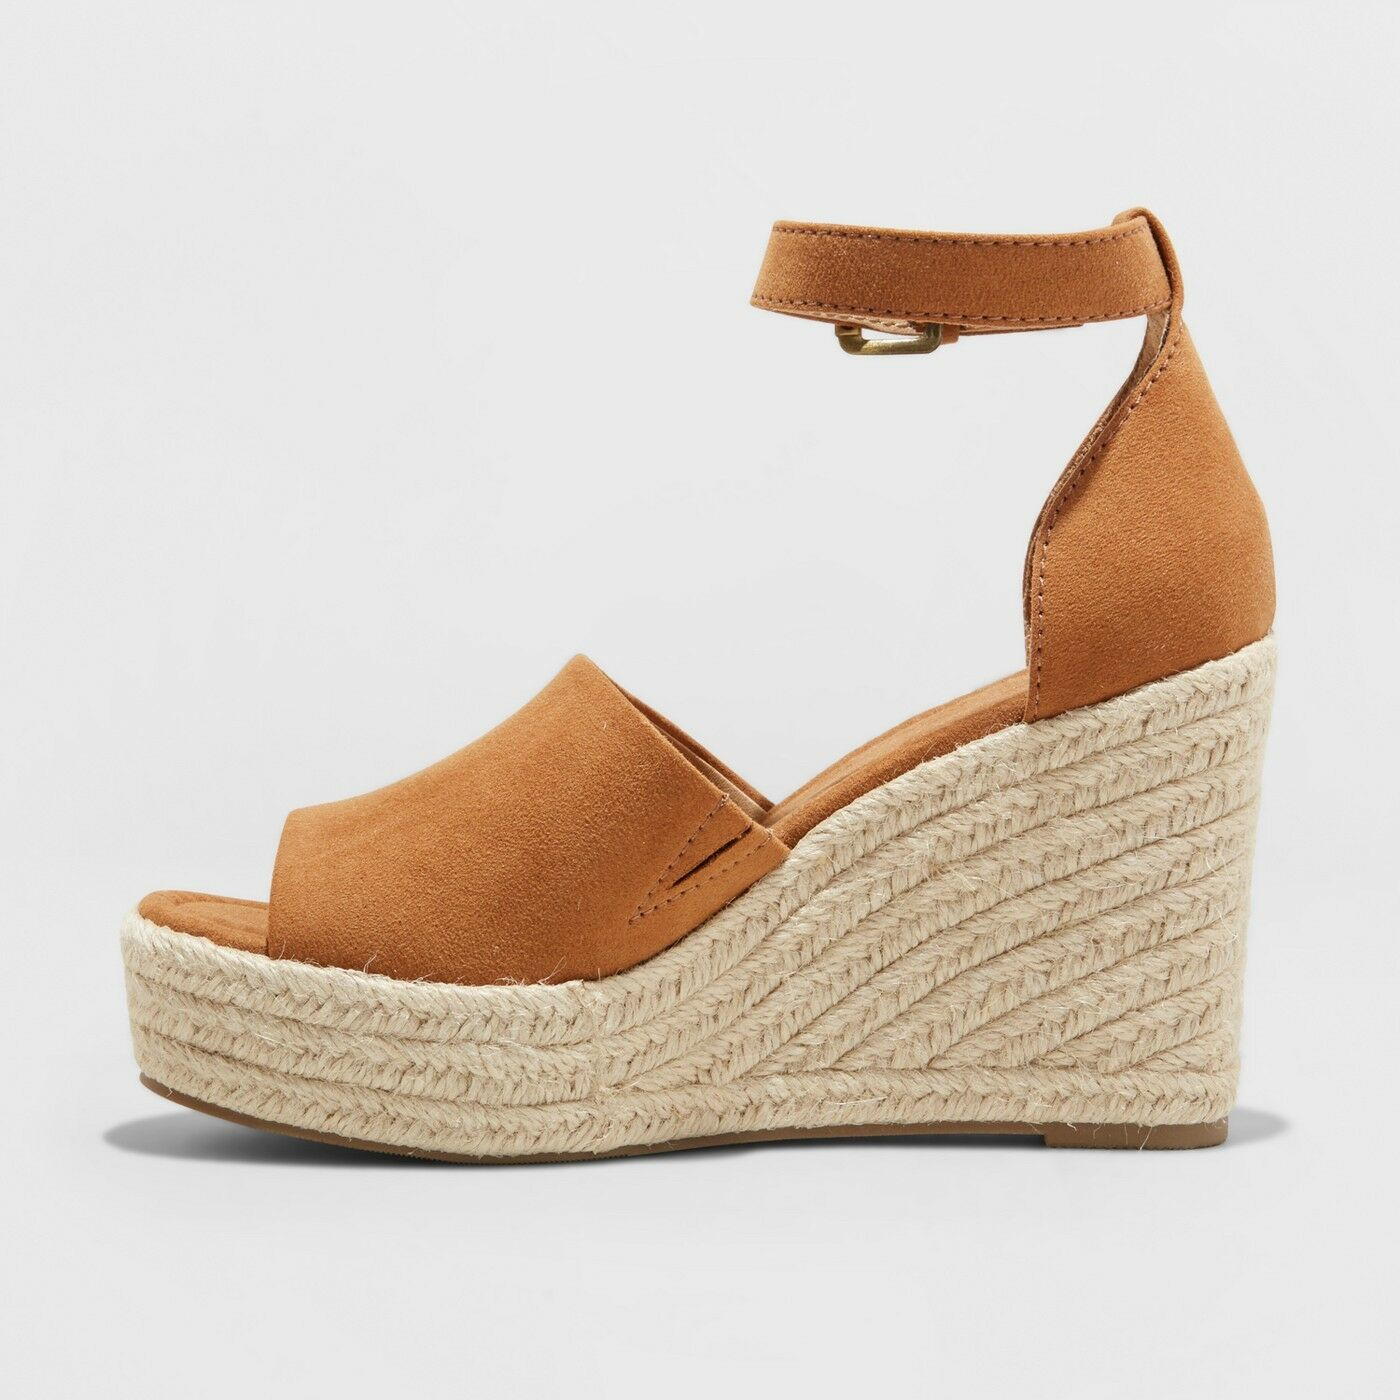 5bc435bb2af NEW Women s Emery Espadrille Sandals - Universal Thread Brown Suede feel